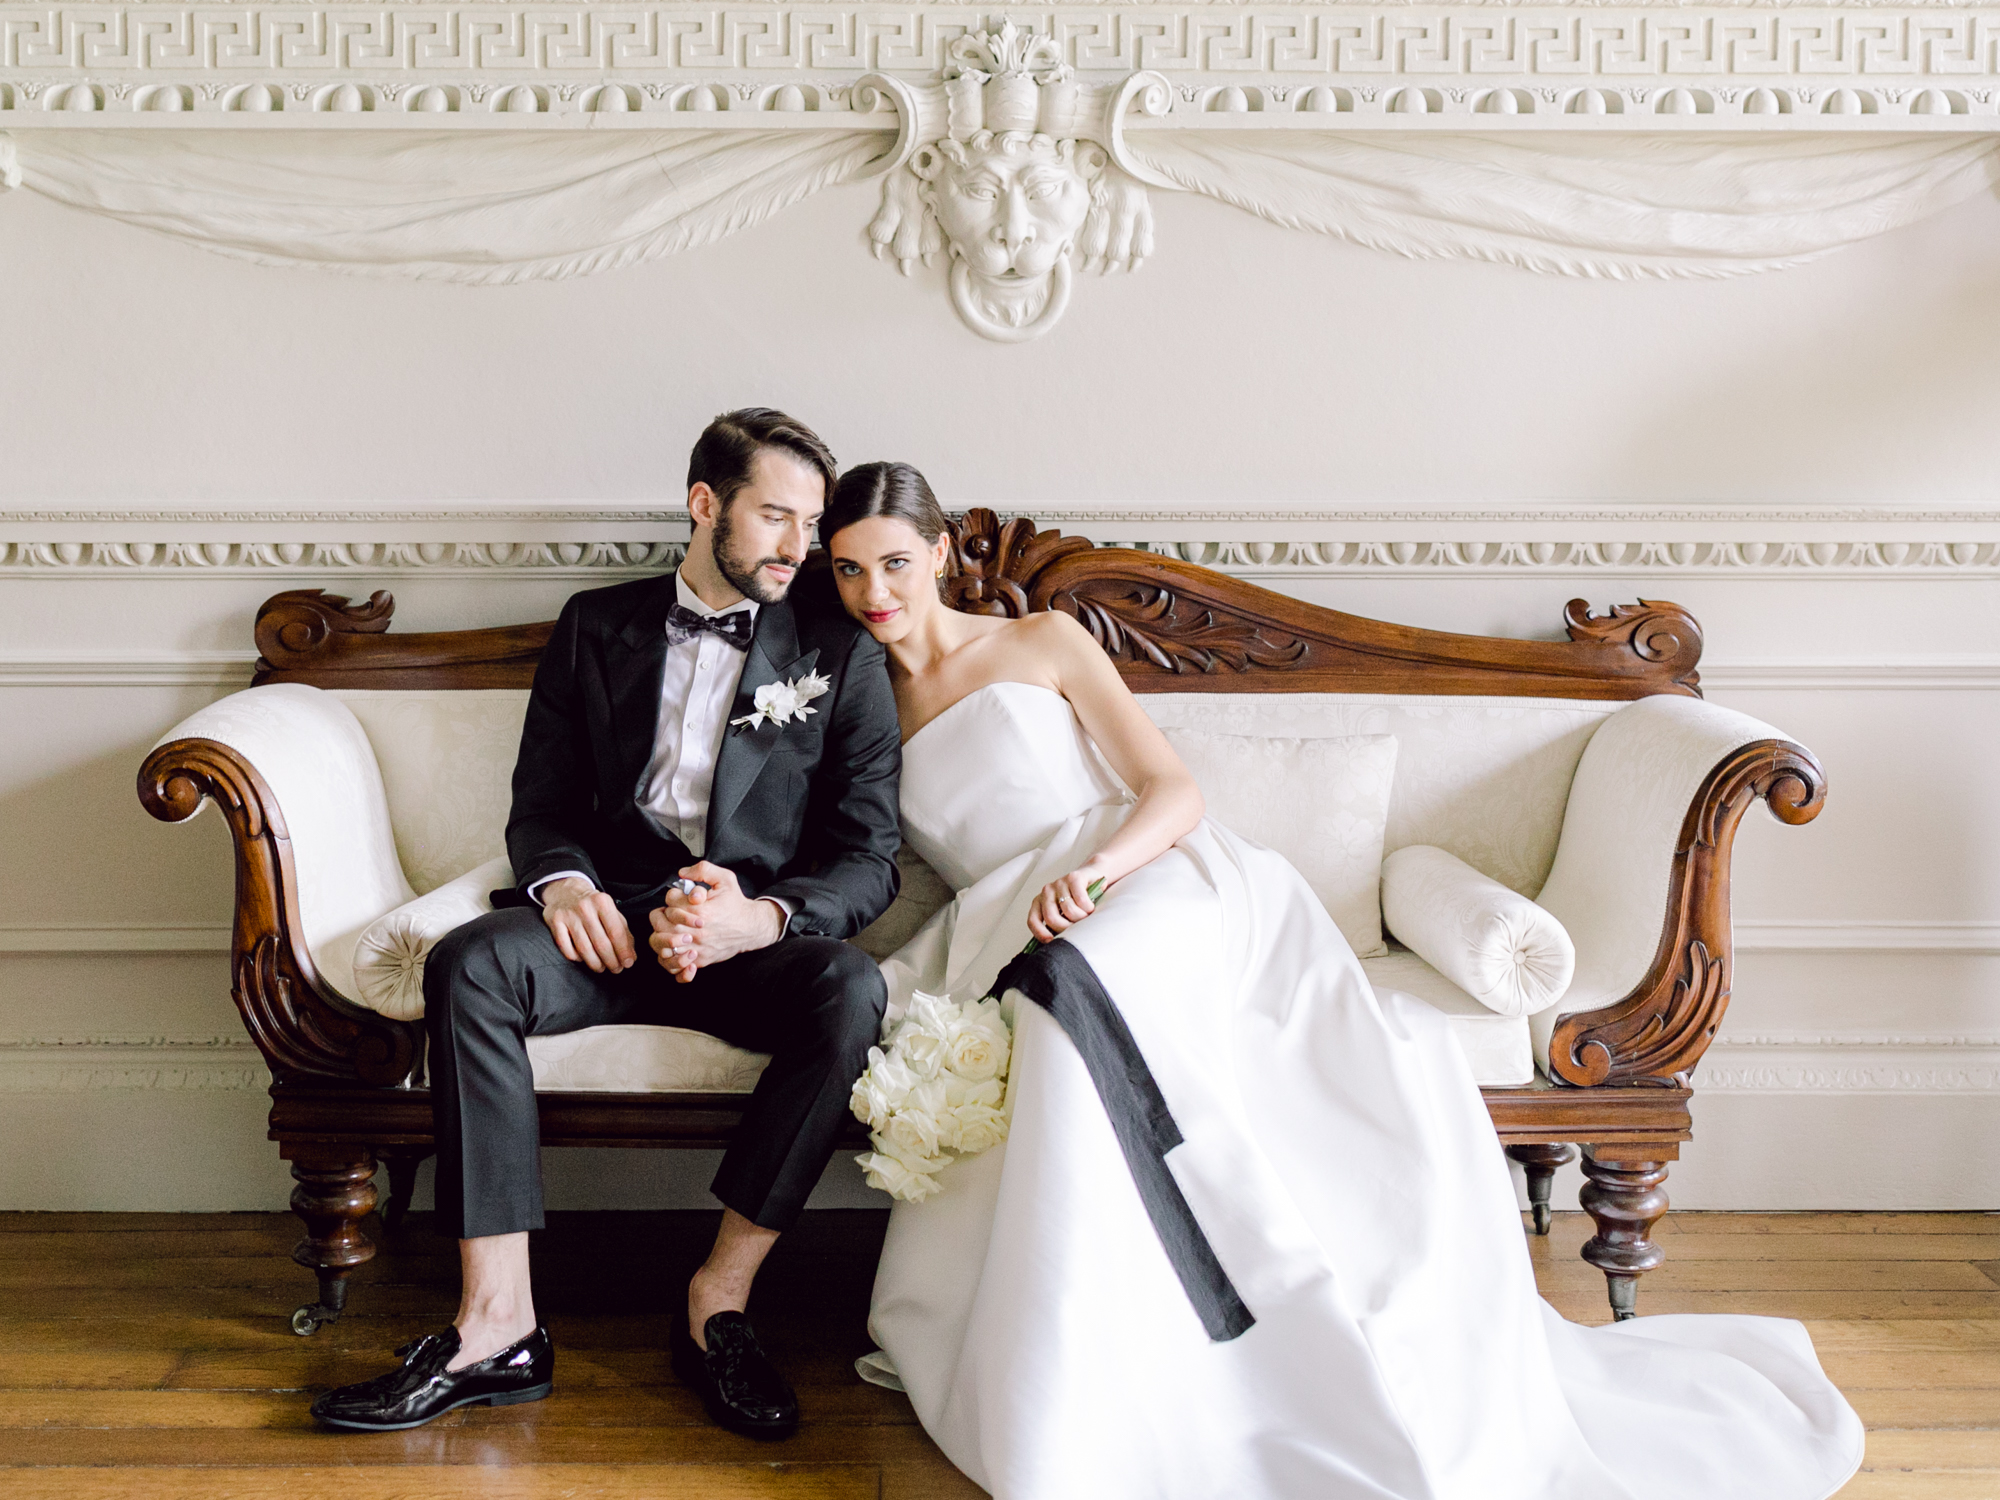 Luxury wedding at Hawkstone Hall, Shropshire